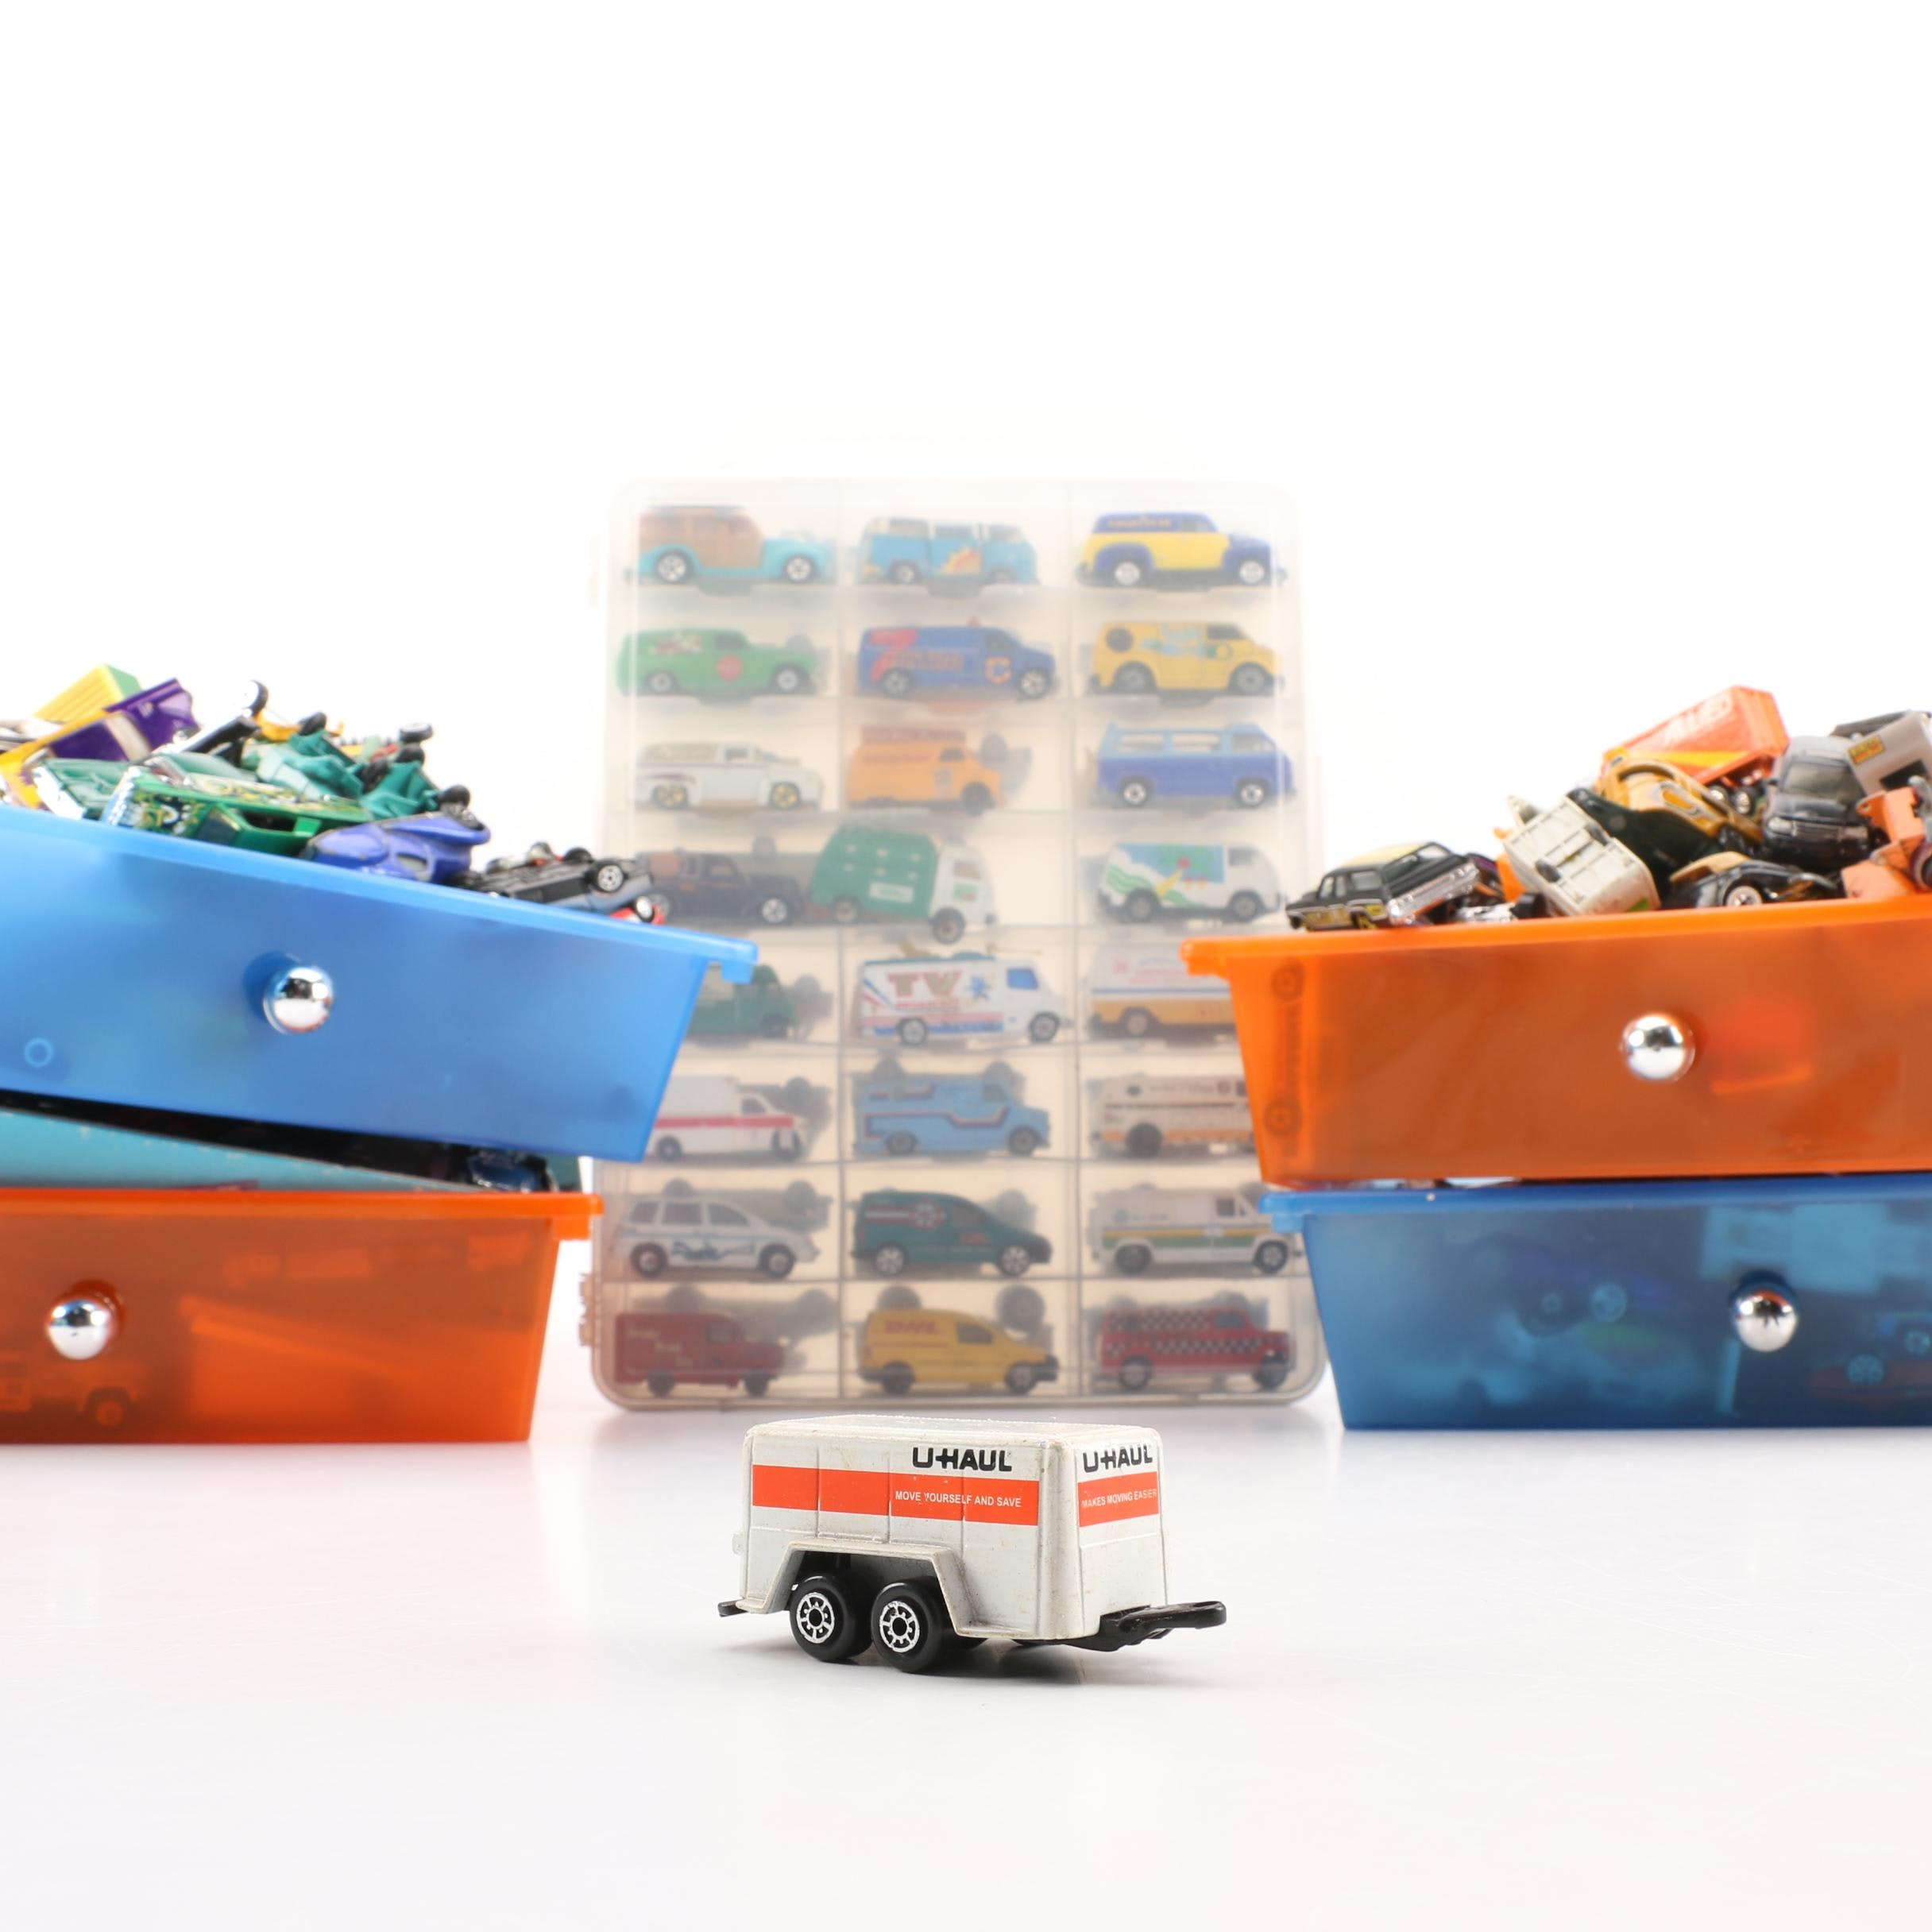 Miniature Scale Replica Die-Cast Vehicles Including Hot Wheels and Lesney